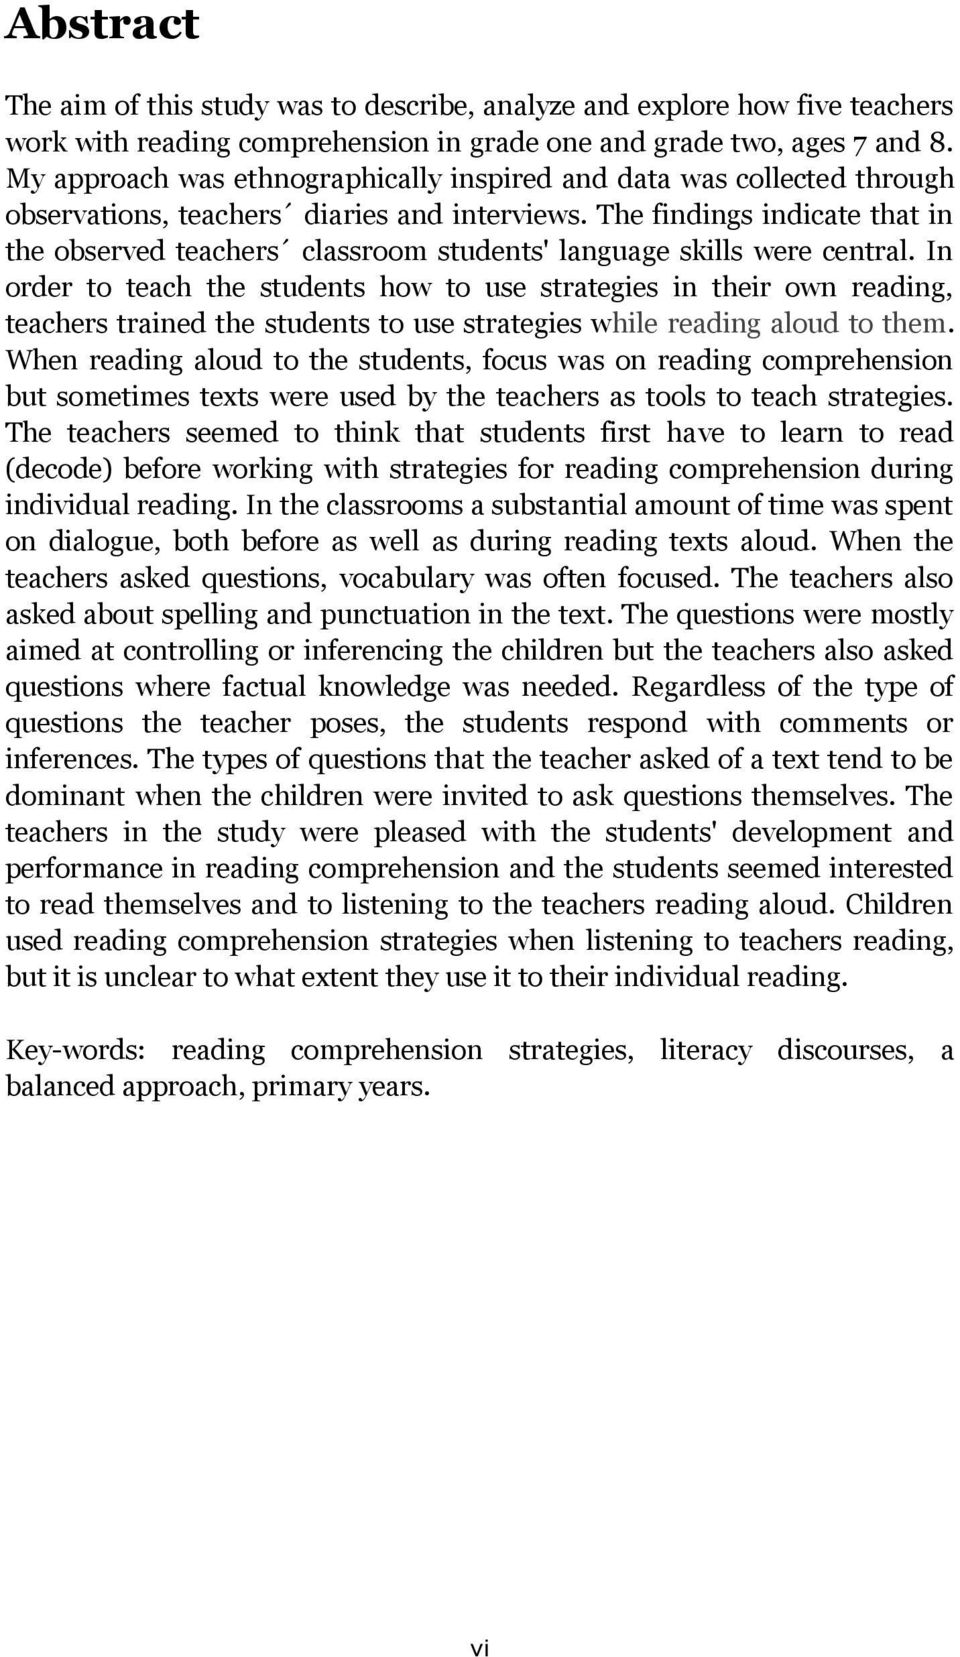 The findings indicate that in the observed teachers classroom students' language skills were central.